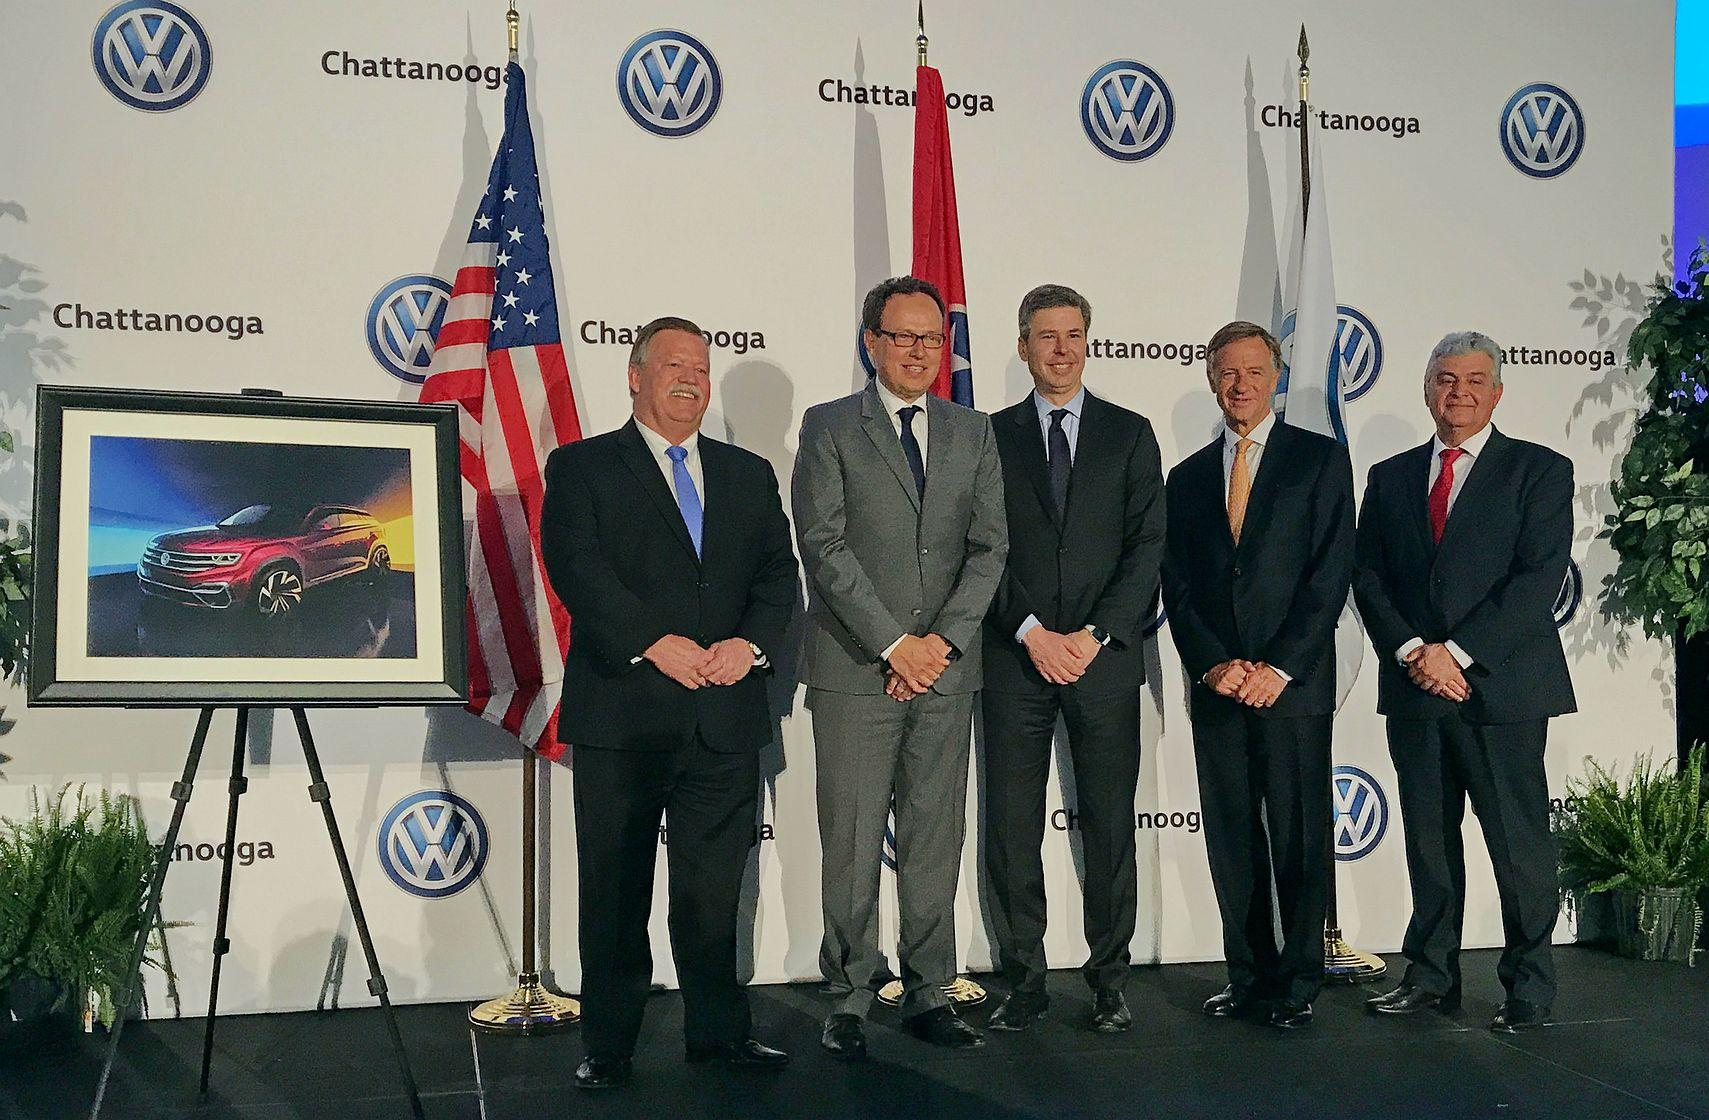 For Volkswagen CEO, Chattanooga-Made Atlas SUV Symbolizes a